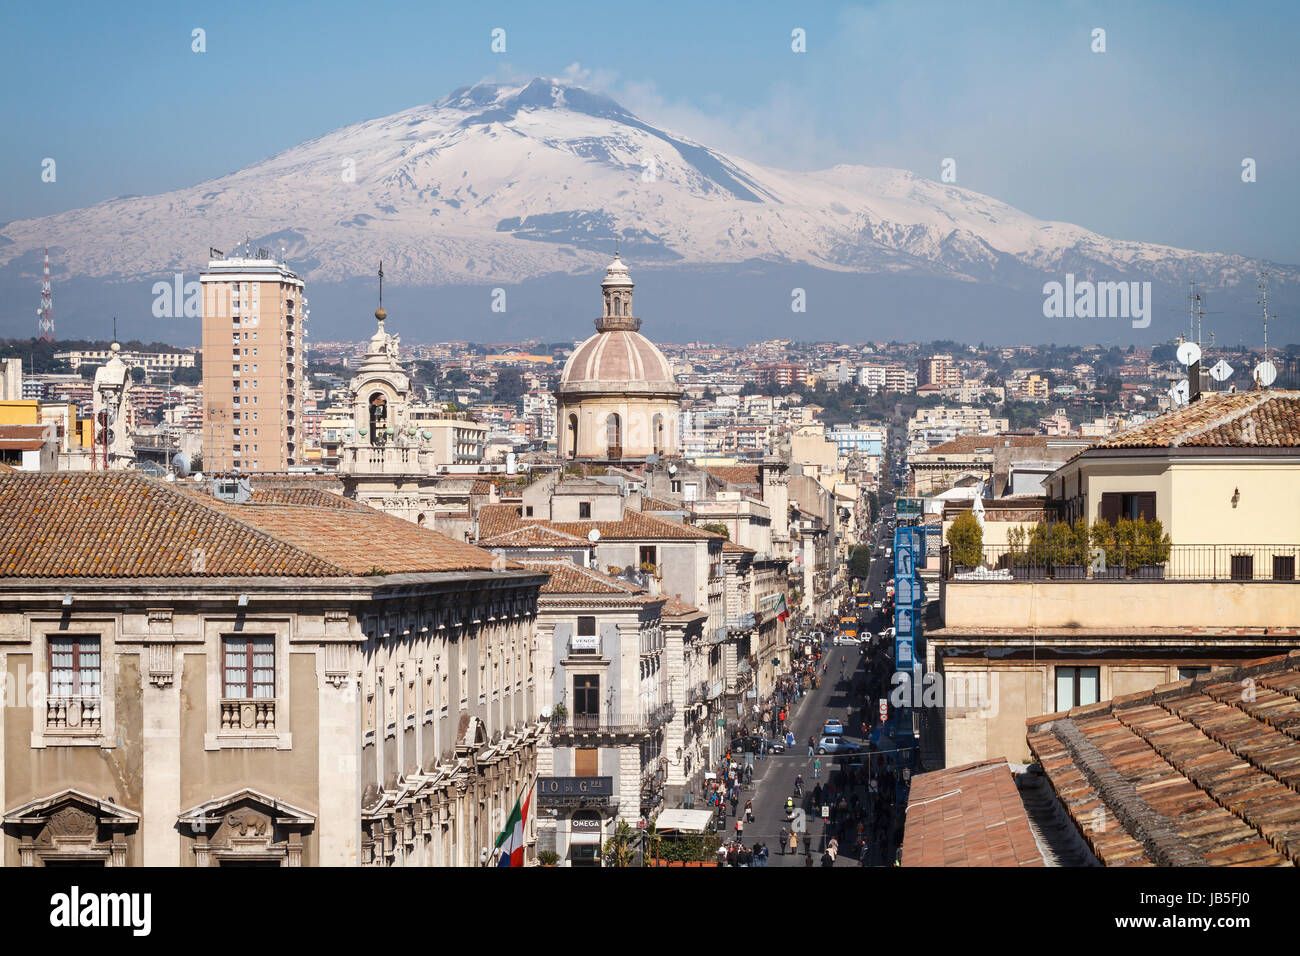 Catania, the central 'Via Etnea' street with the snow covered Mount Etna volcano, Sicily, Italy. - Stock Image